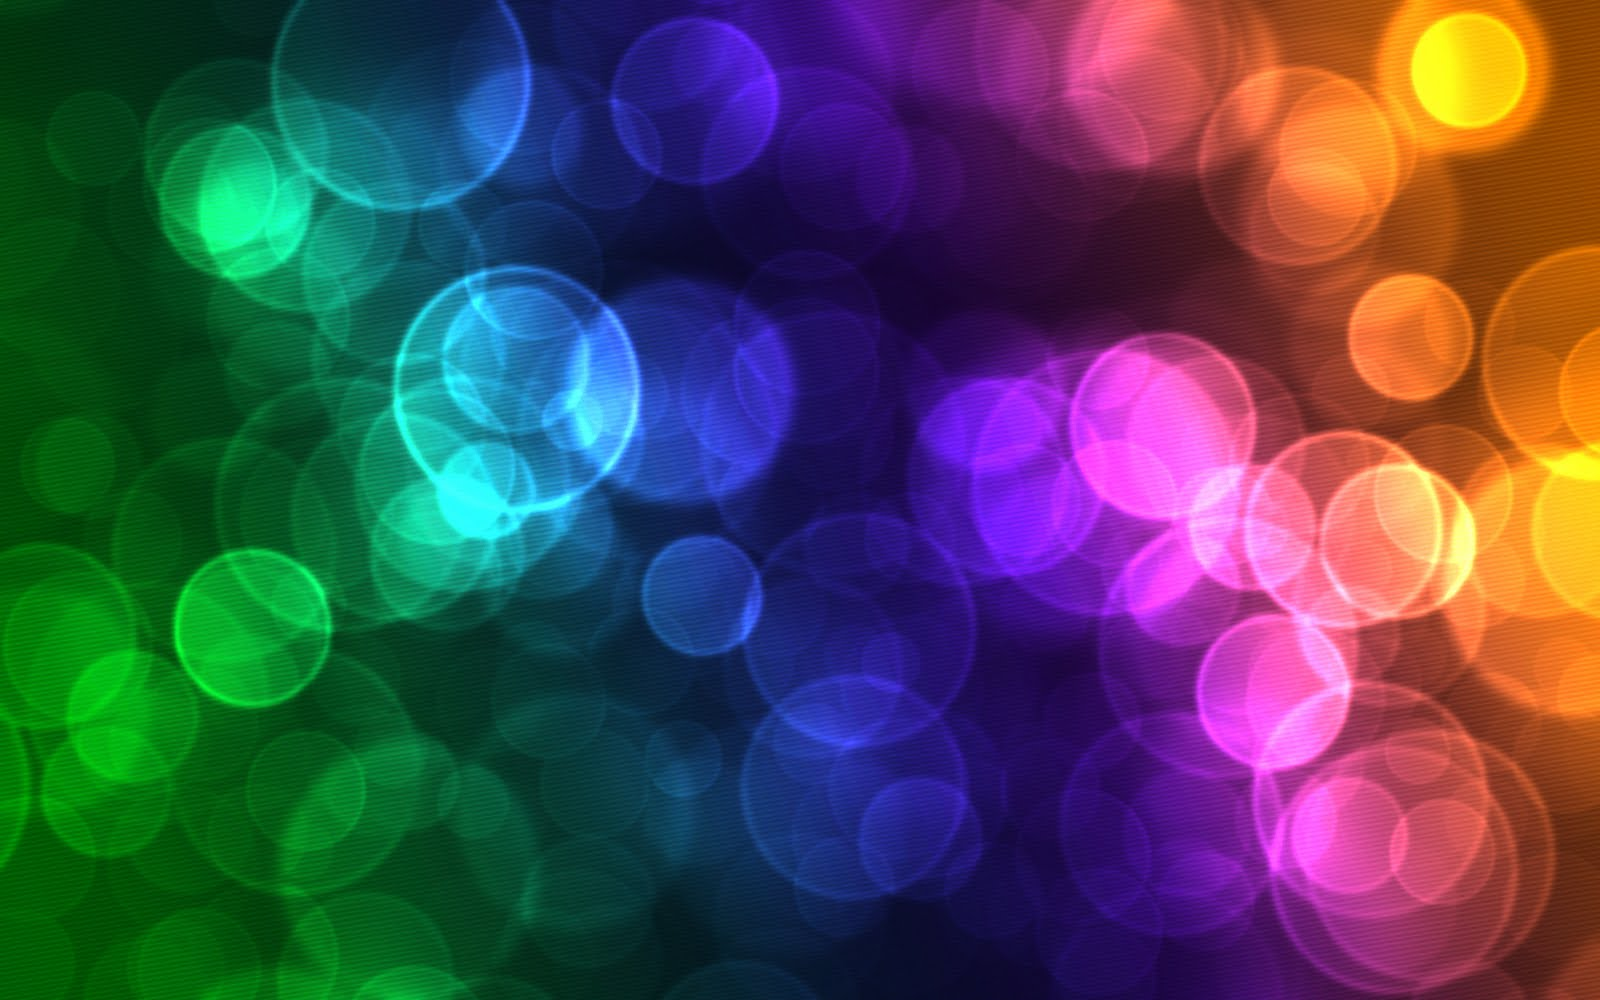 Free Download Wallpapers Box Abstract Digital Bubbles Hd Wallpapers 1600x1000 For Your Desktop Mobile Tablet Explore 44 Bubbles In Wallpaper Moving Bubble Wallpaper